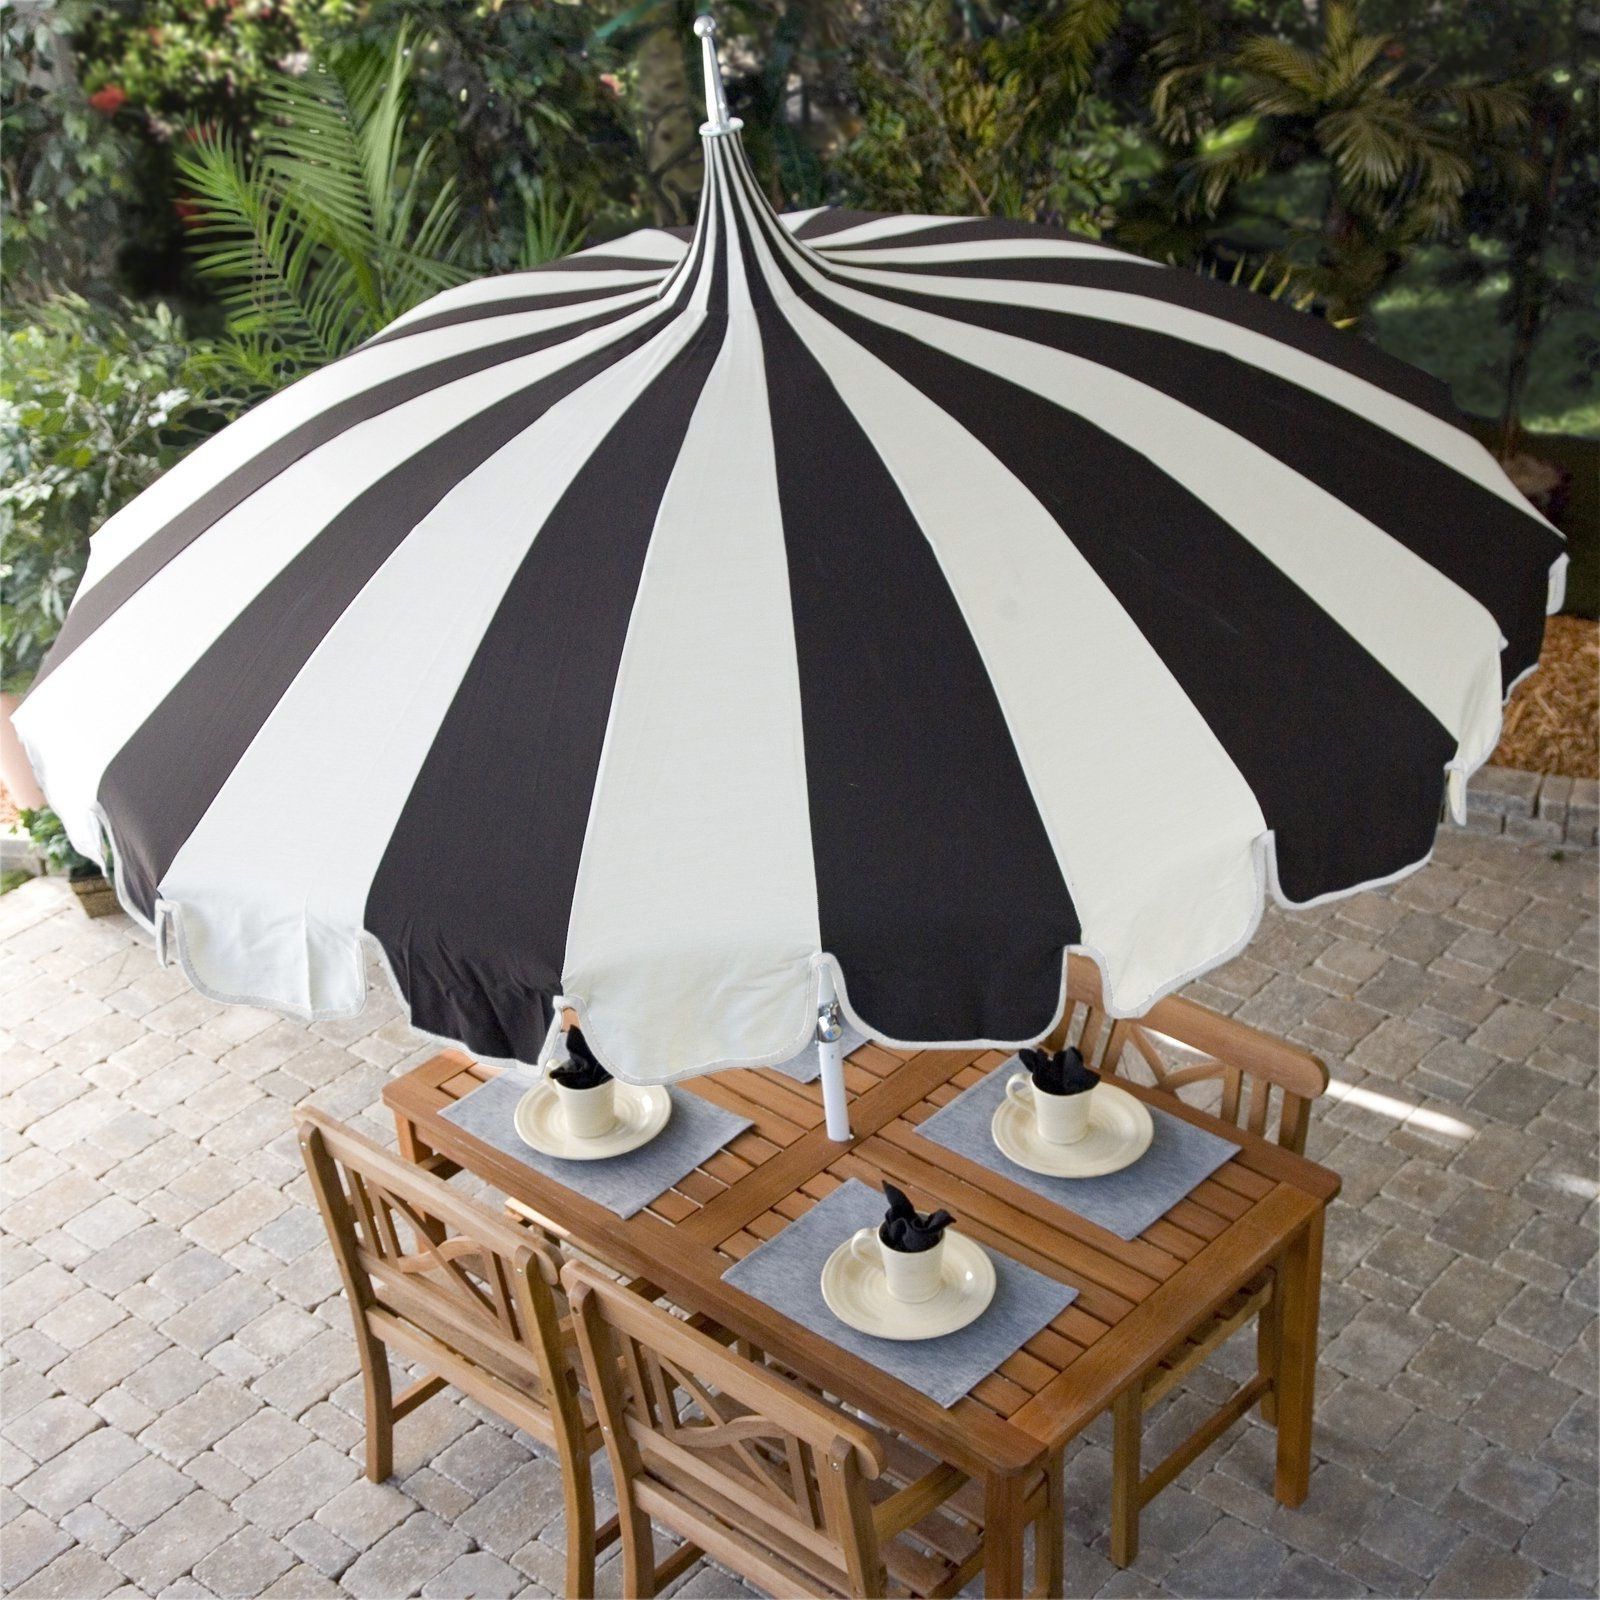 Patio Umbrellas At Lowes Inside Current Lowes Patio Umbrella Best Of Have To Have It Pagoda 8 5 Ft Patio (View 11 of 20)